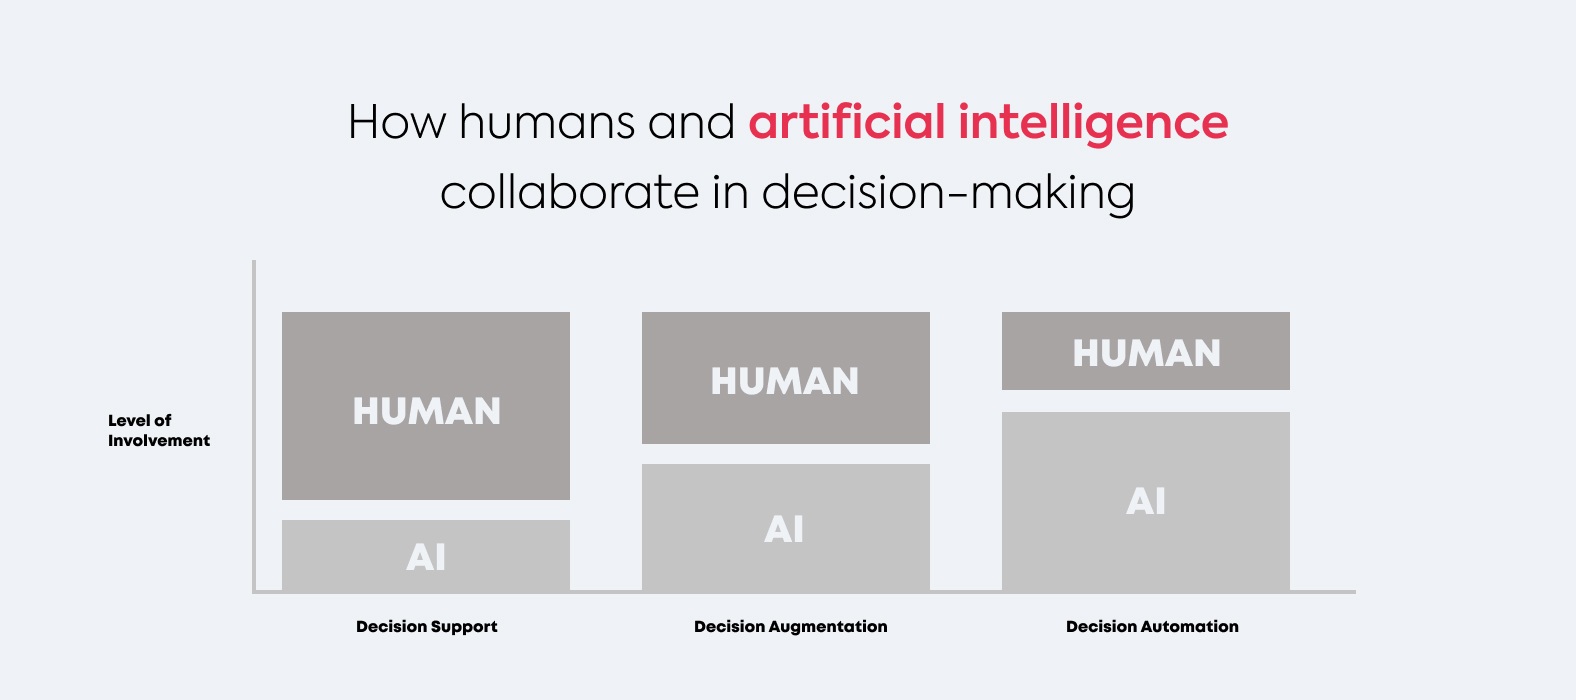 Ho humans and artificial intelligence collaborate in decision-making